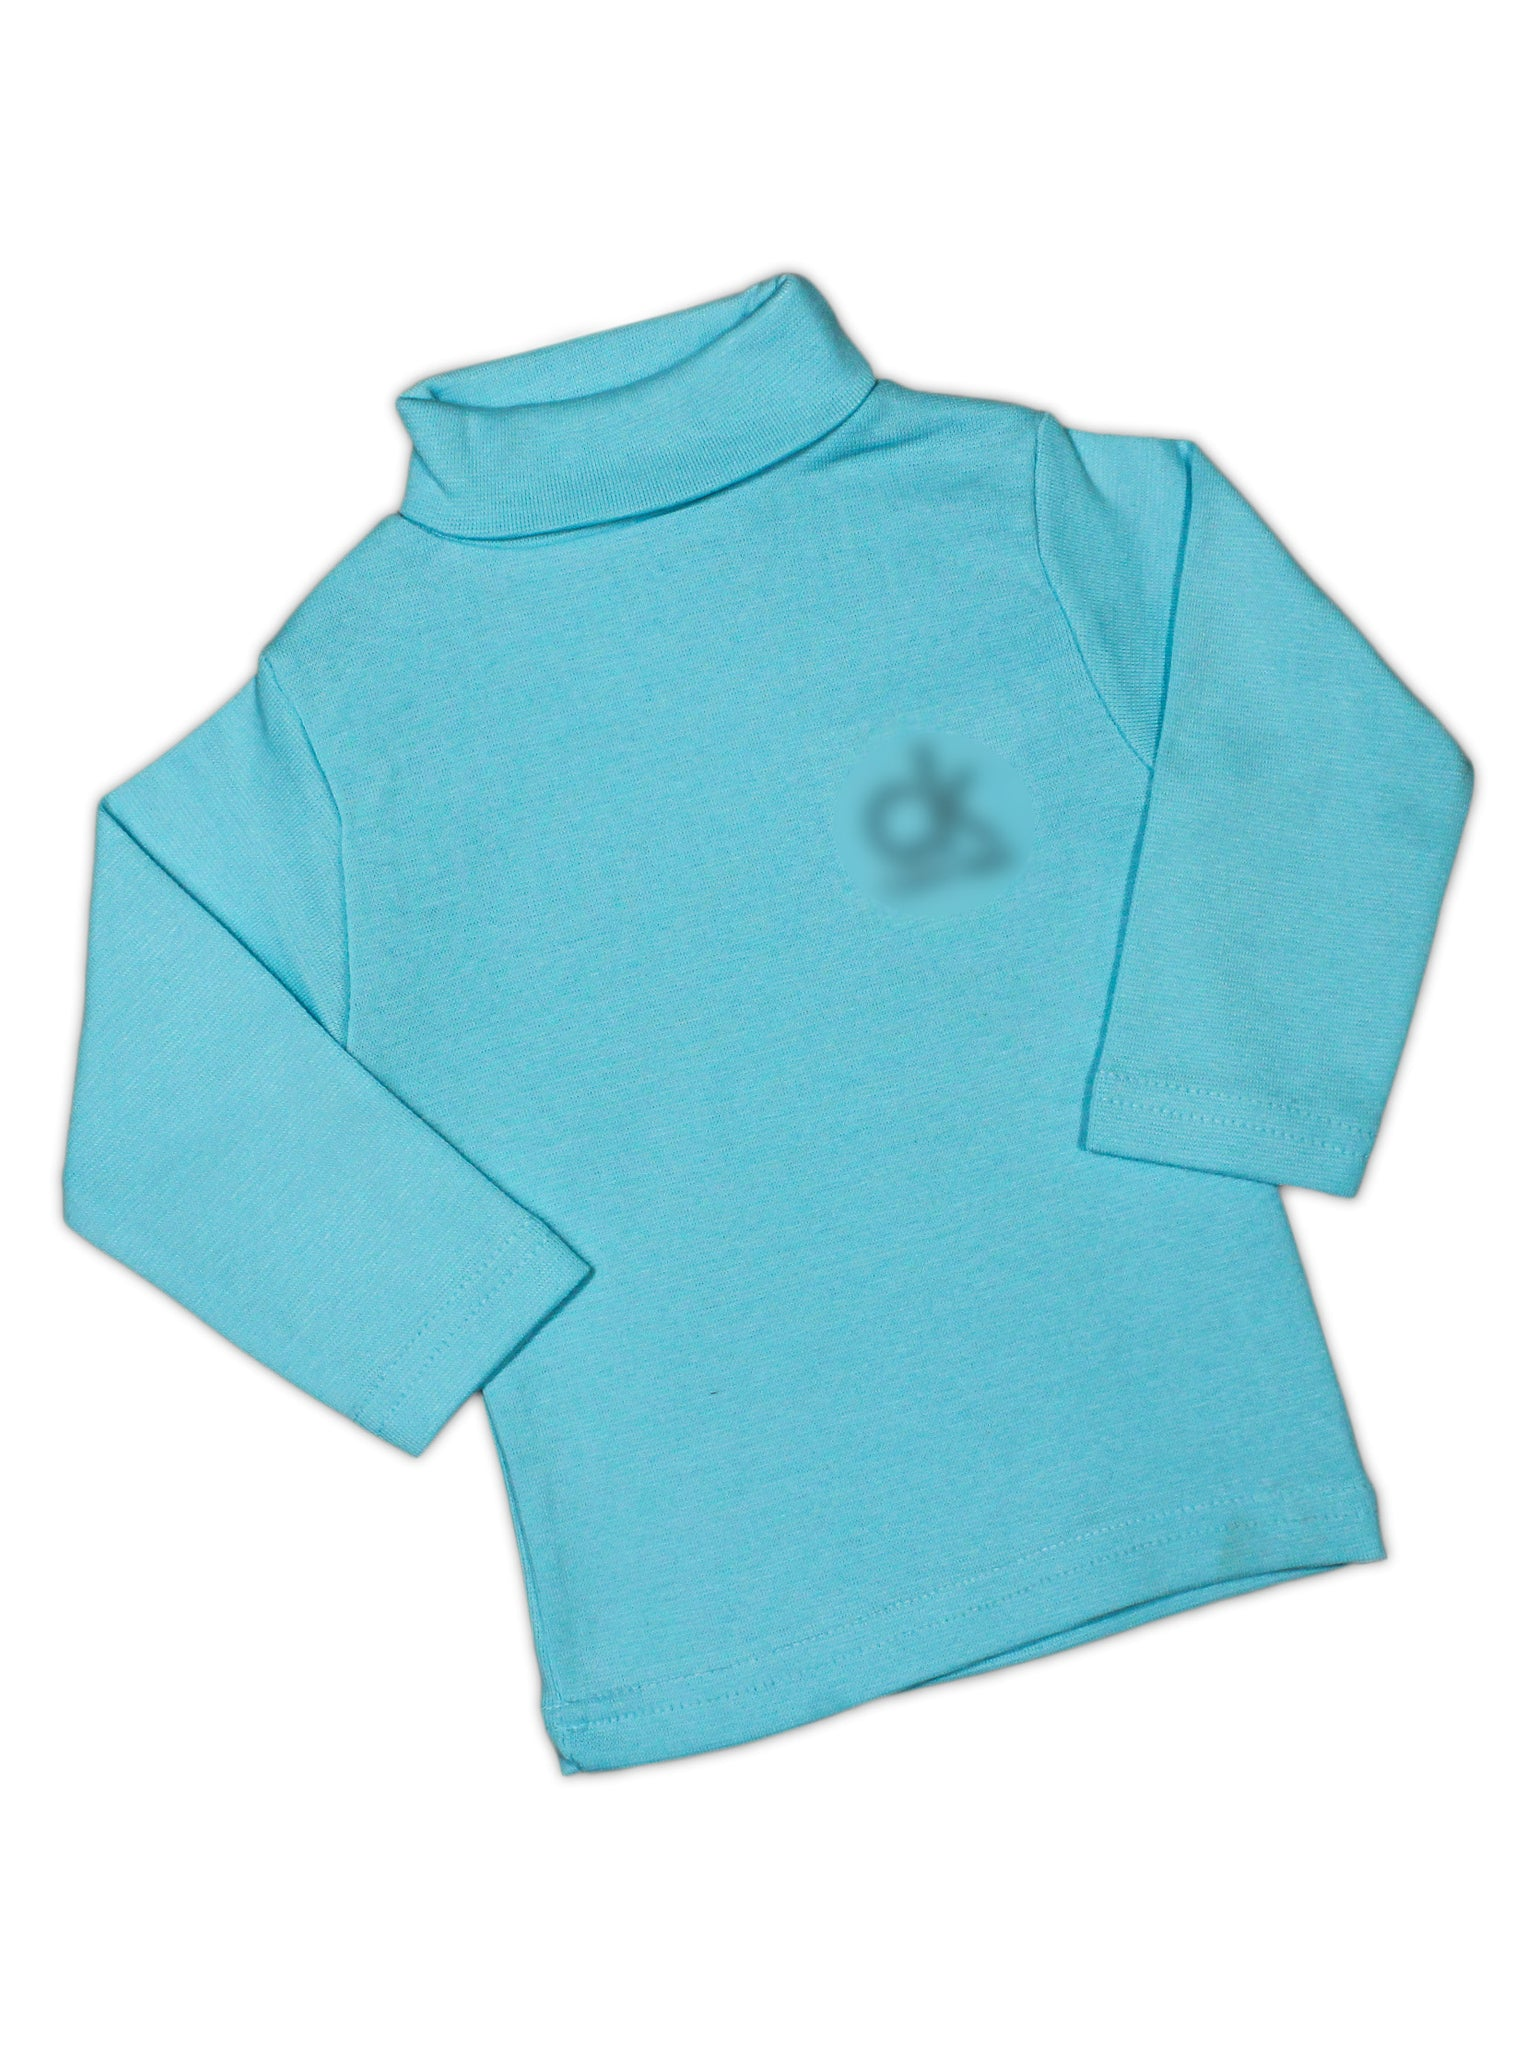 ATT Hi-Neck for Kids 6Mth - 3.5 Yrs Light Blue